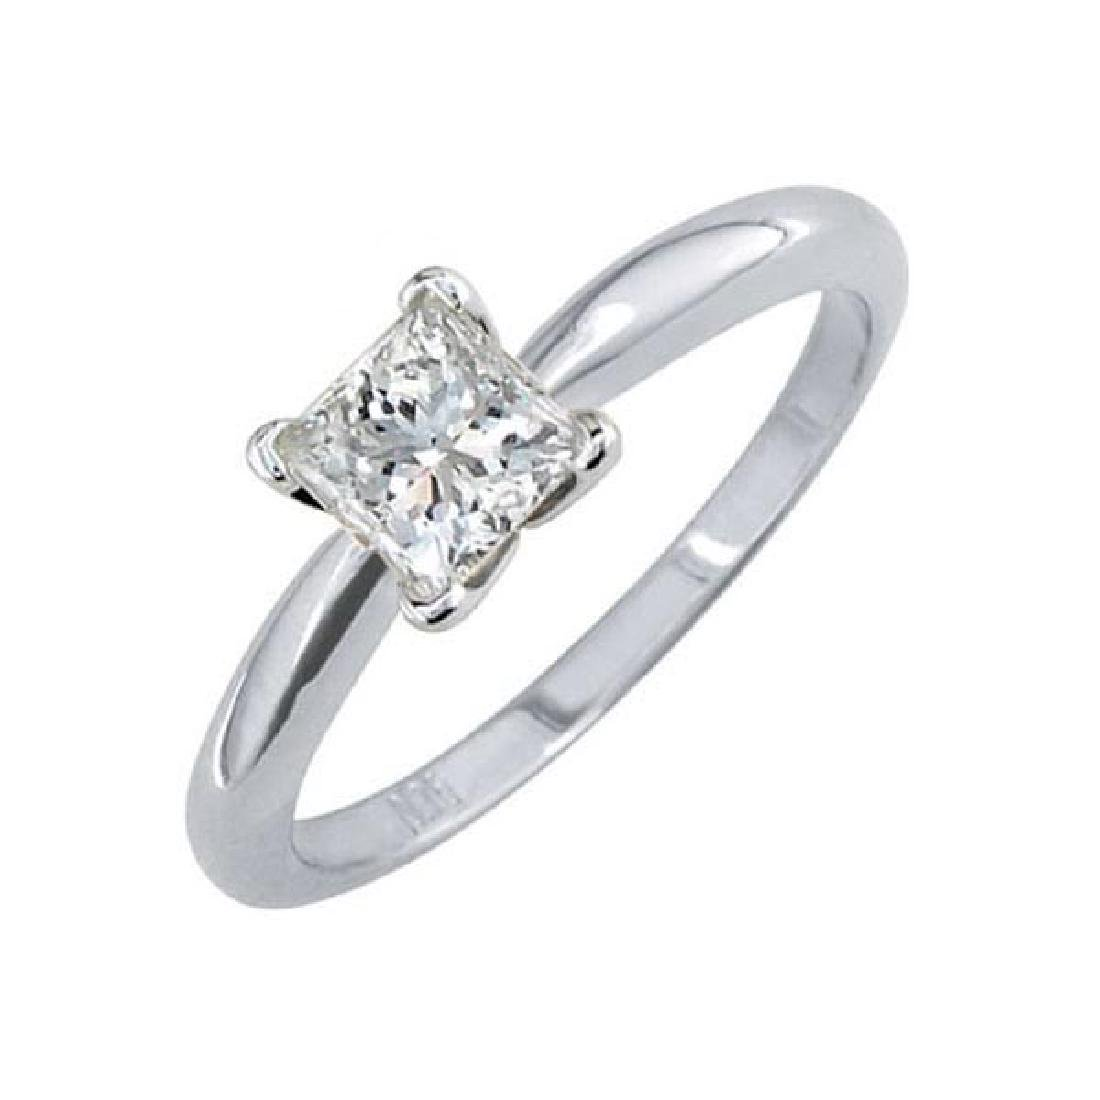 Certified 1.26 CTW Princess Diamond Solitaire 14k Ring